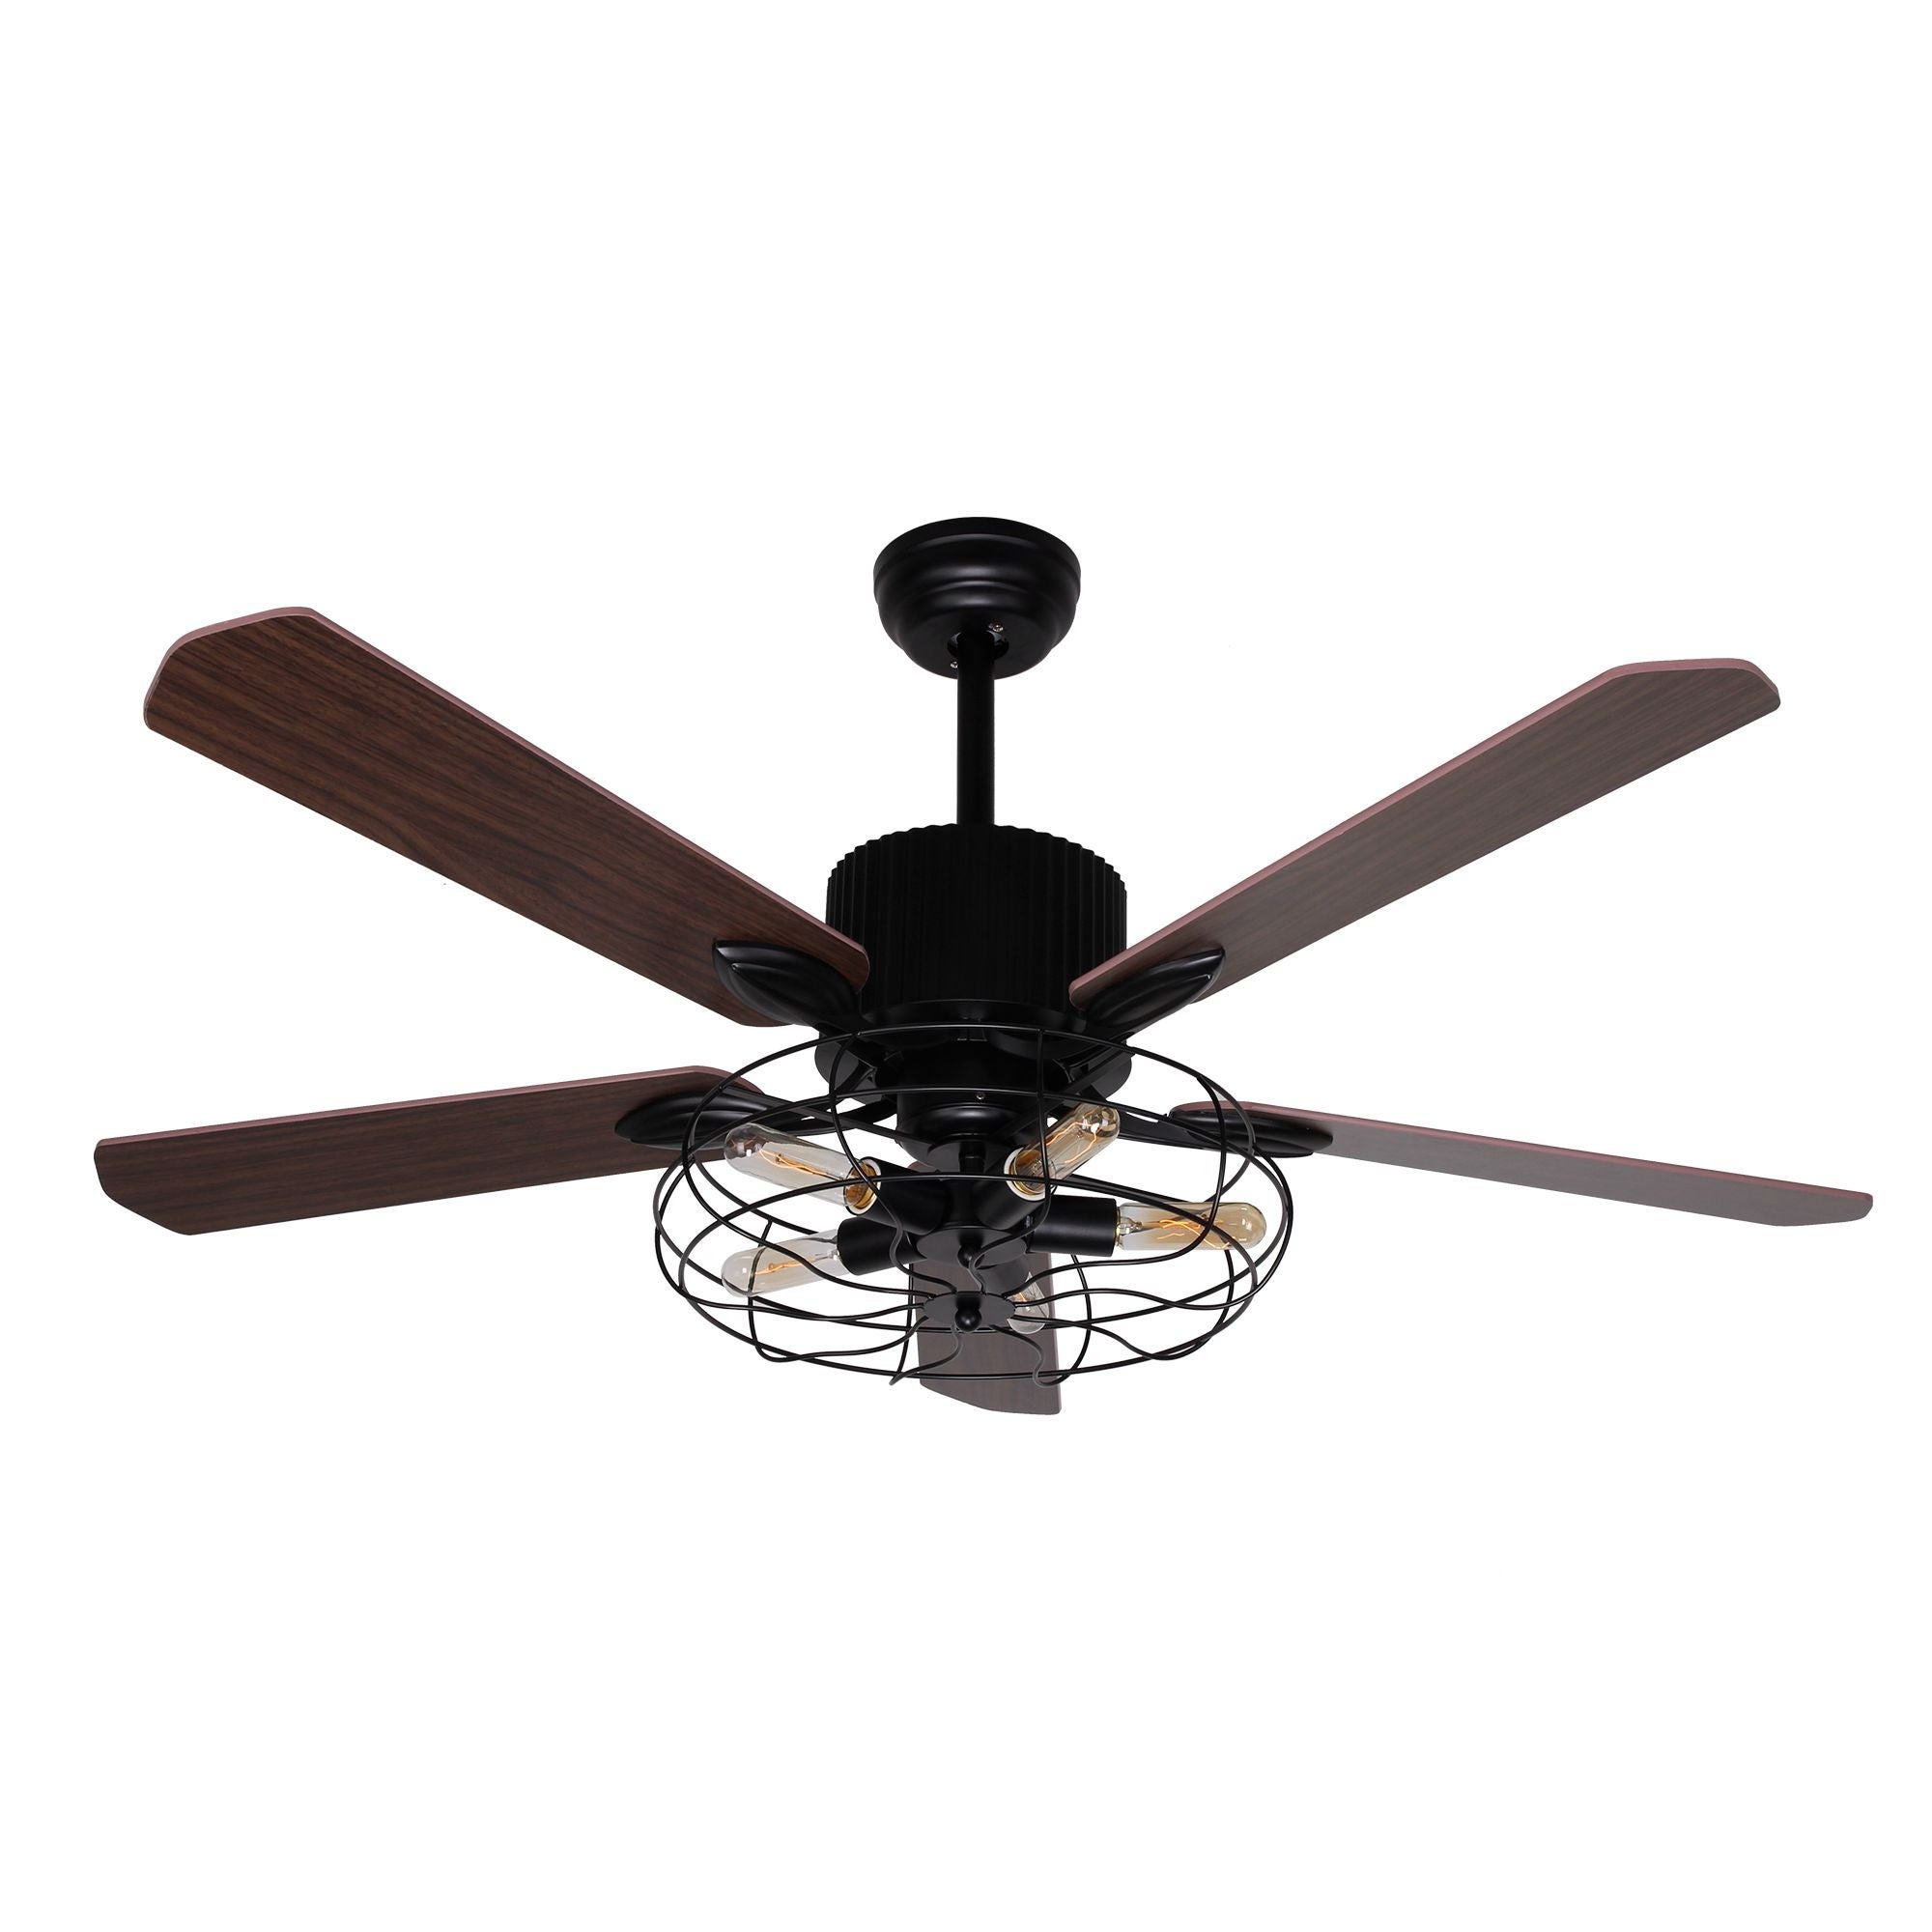 "Best And Newest Bennett 5 Blade Ceiling Fans With Remote Inside 52 Inch Brown Wood 5 Blades Cage Ceiling Fan With Remote – 52"" (View 17 of 20)"